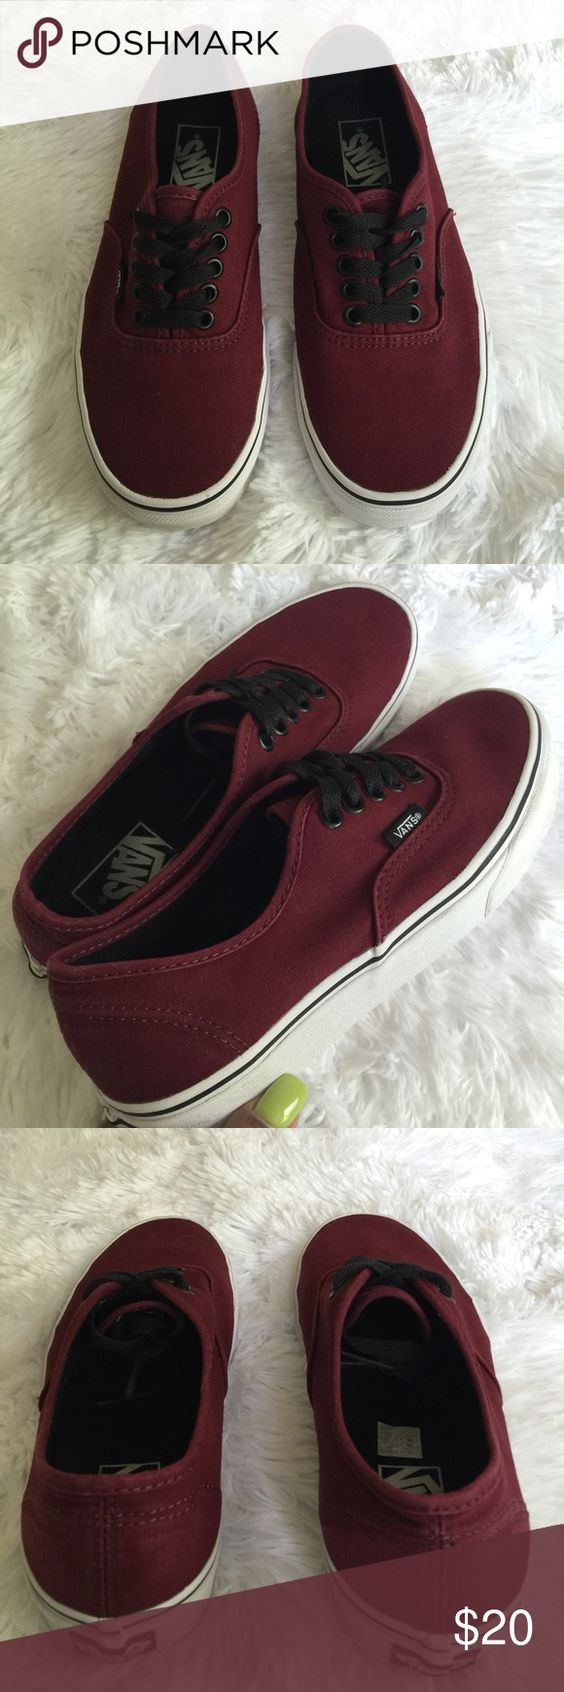 "Vans Authentic Kids Sneakers Excellent Condition / Only worn a couple of times and looks brand new / Canvas Upper & a Vans' Classic ""Off The Wall"" Sole / Burgundy Color Vans Shoes Sneakers"